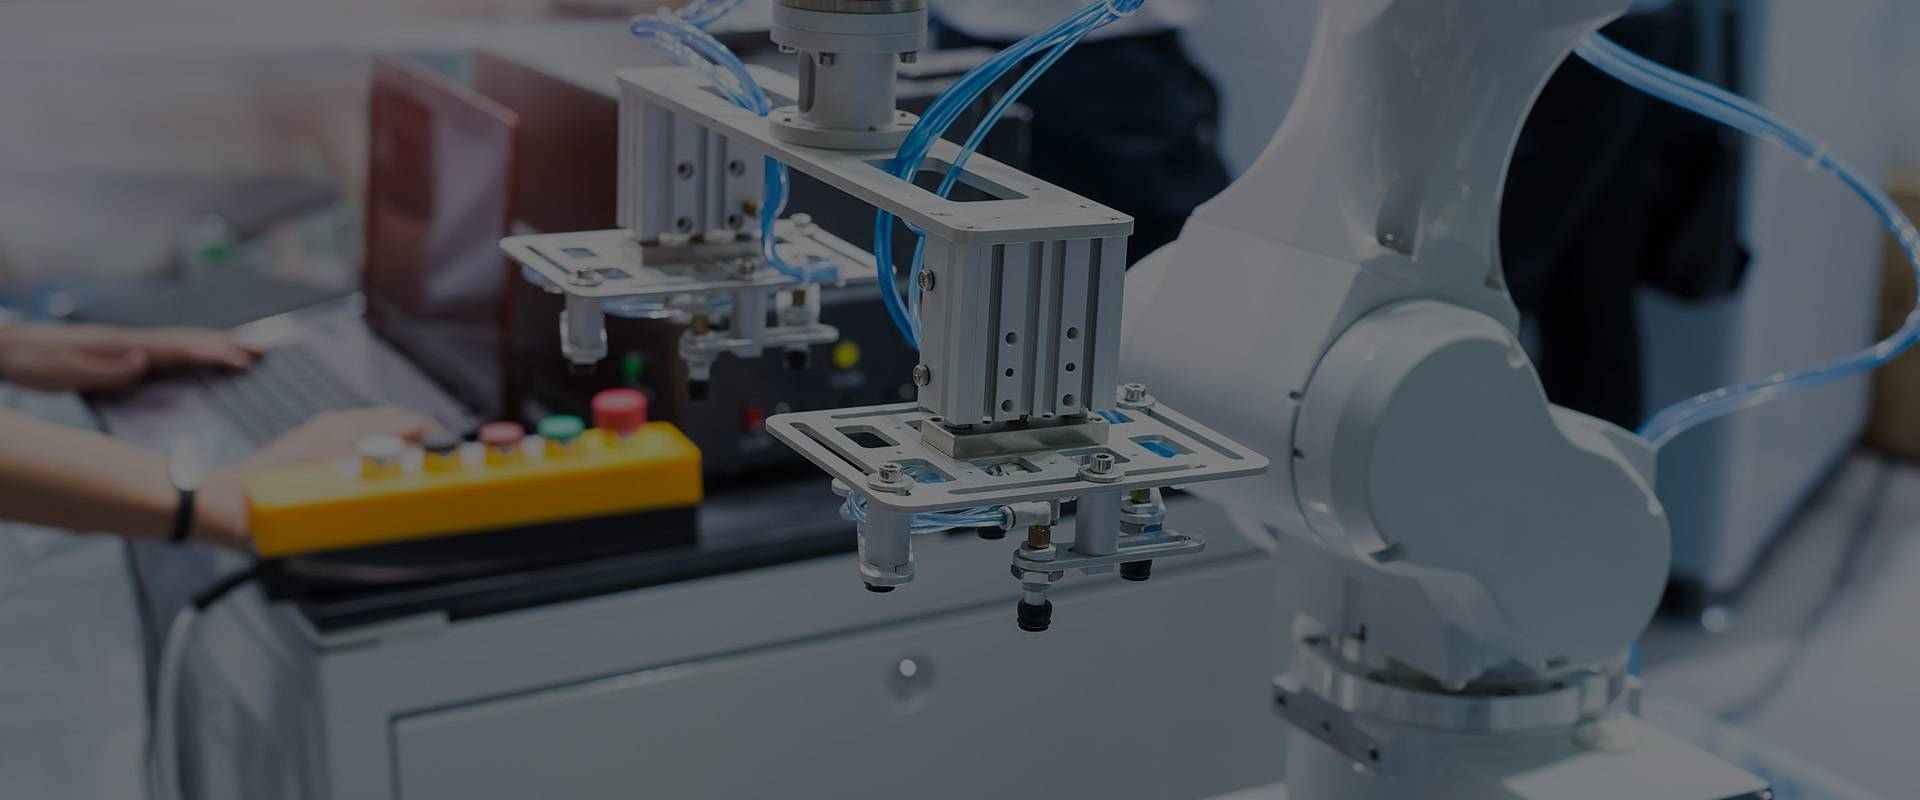 Medical Device Manufacturing Recruiting